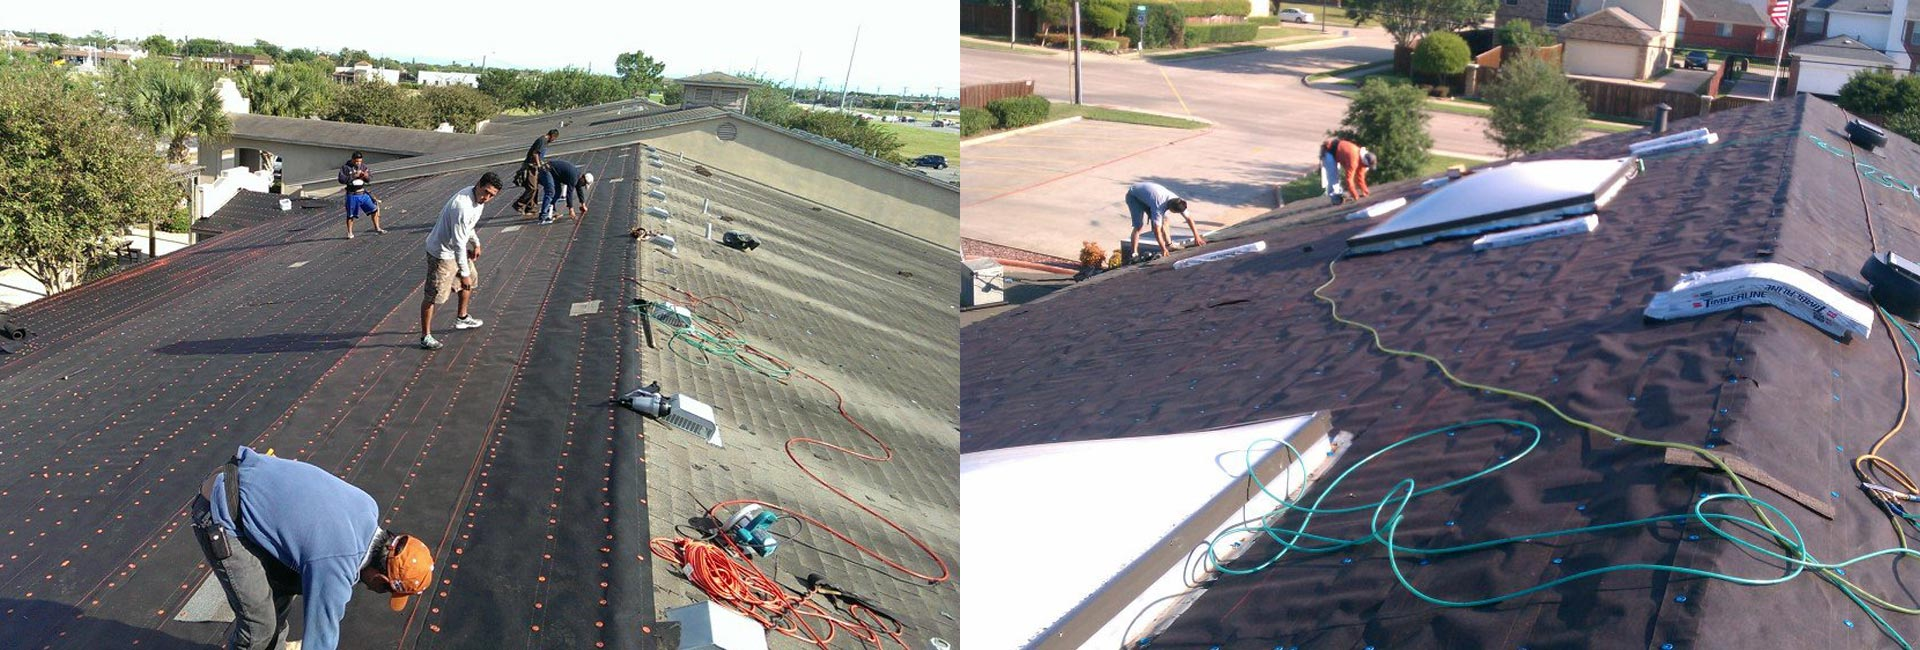 Roofing Companies, Roof Replacement in Frisco, Lewisville